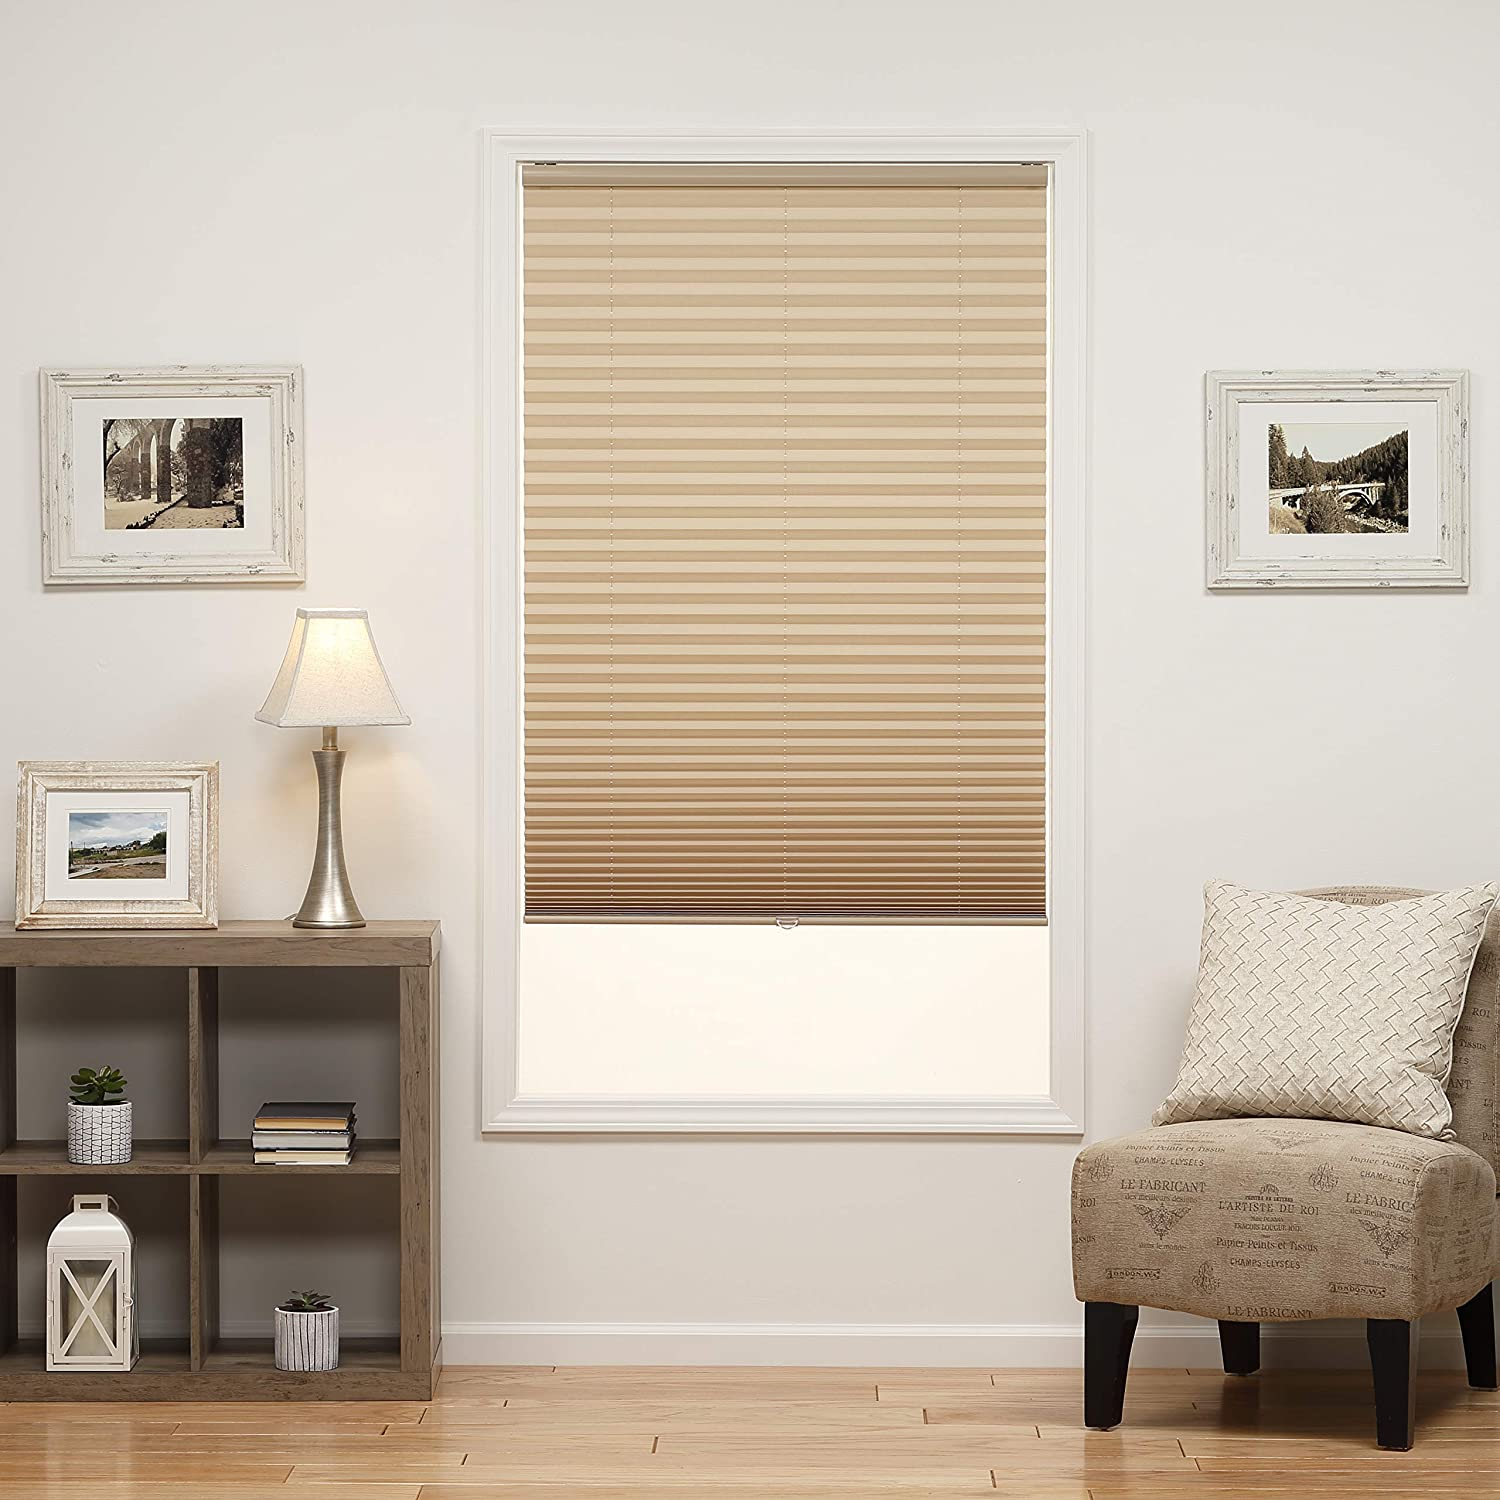 Camel DEZ Furnishings QDCM260480 Cordless Light Filtering Pleated Shade 26W x 48L Inches